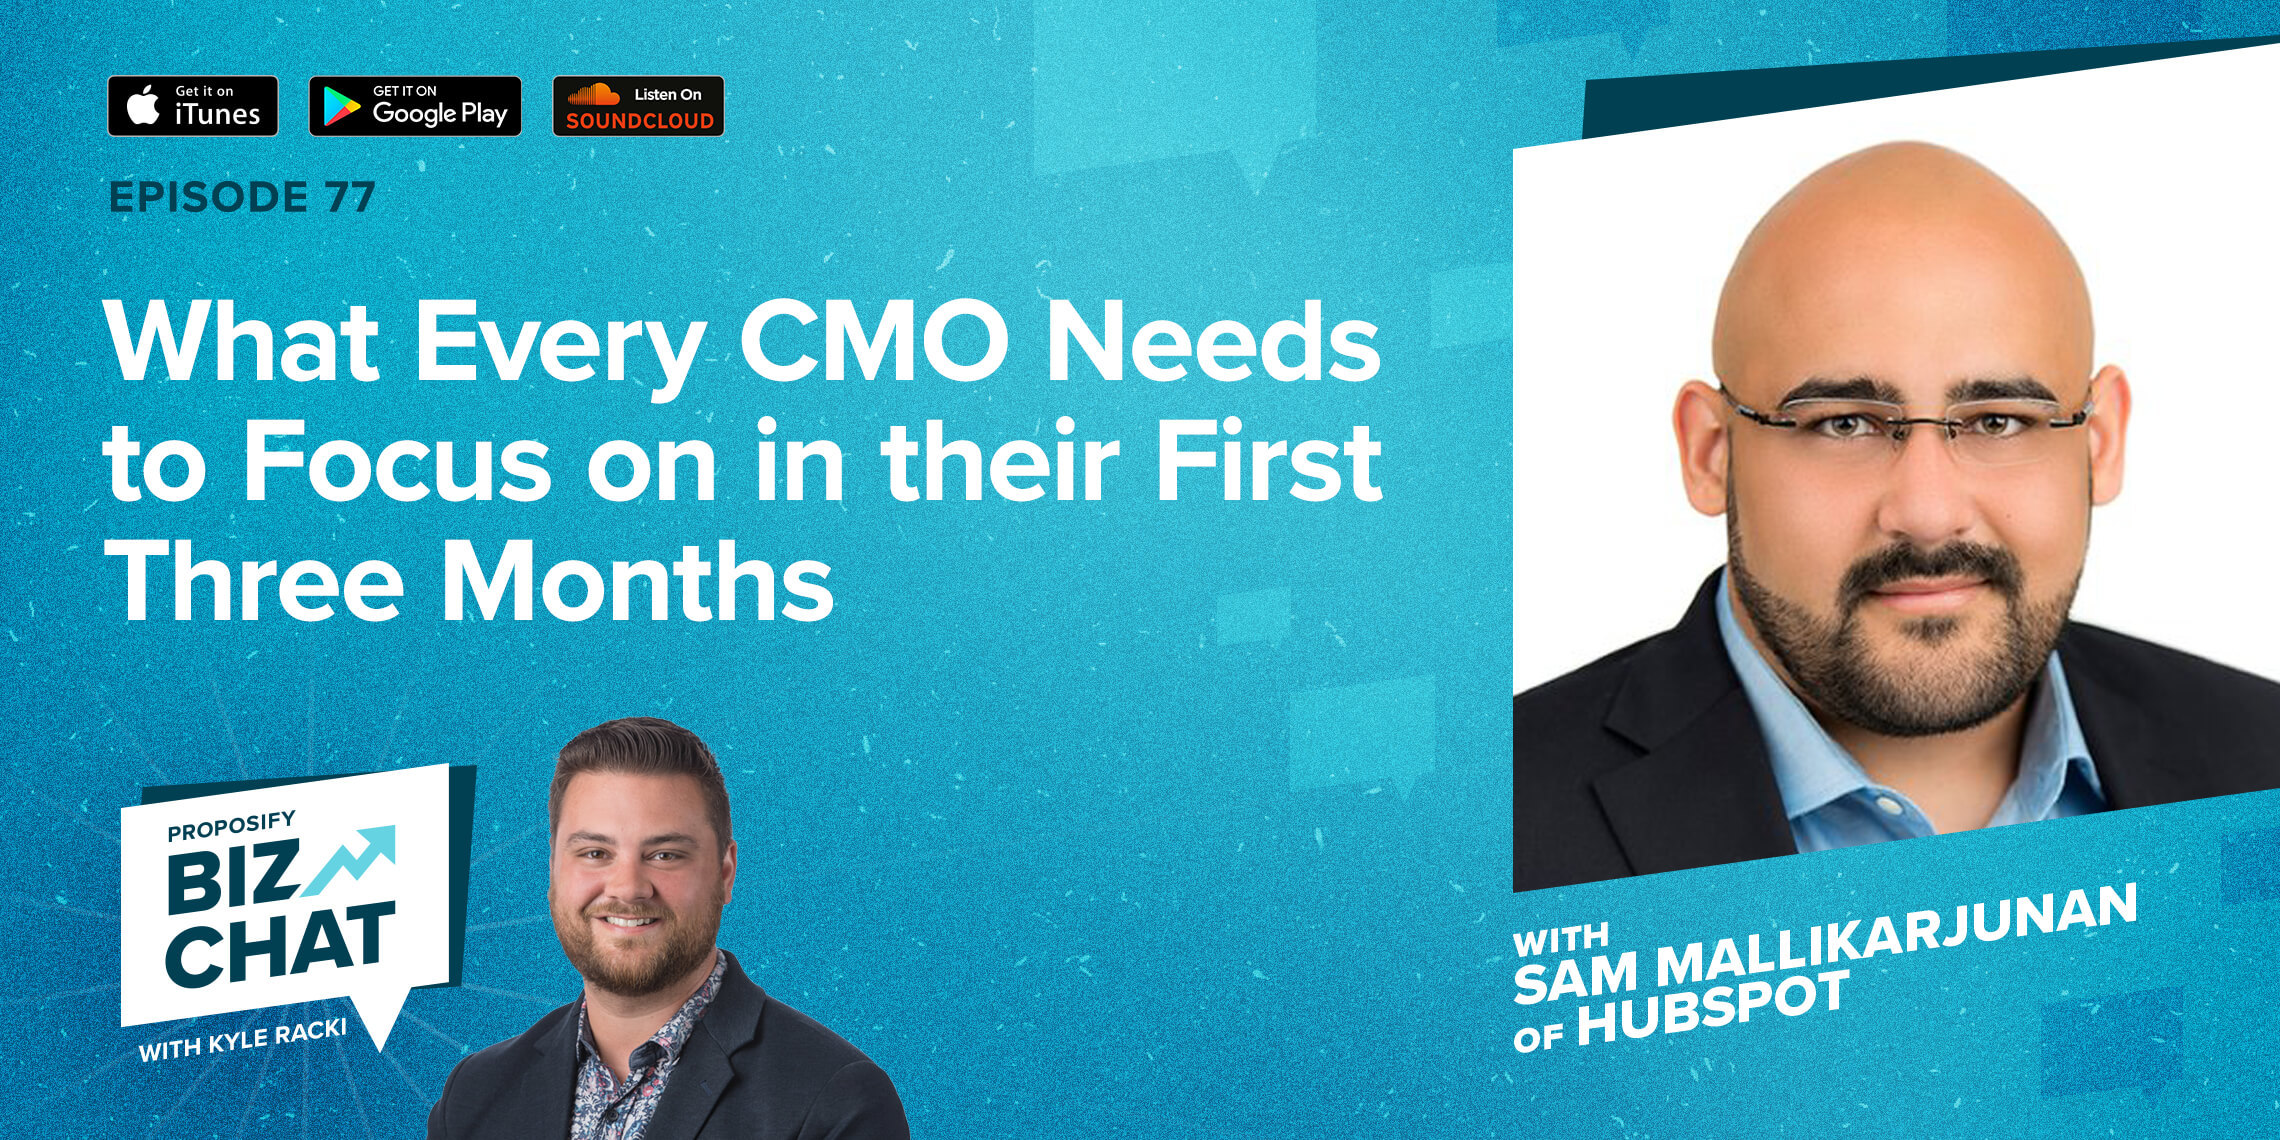 What Every CMO Needs to Focus on in their First Three Months